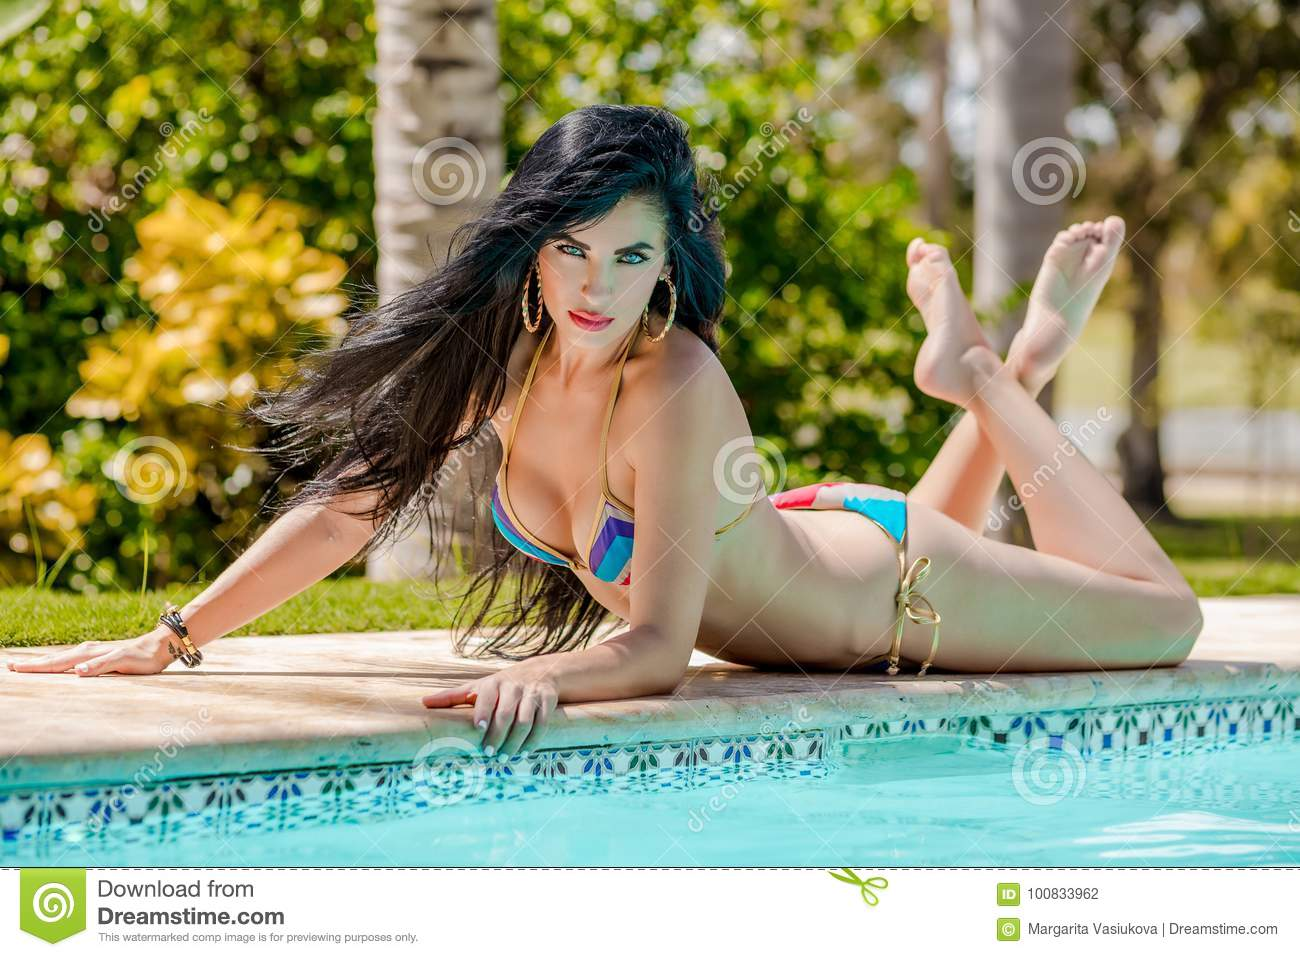 Latina in bikini by a pool advise you